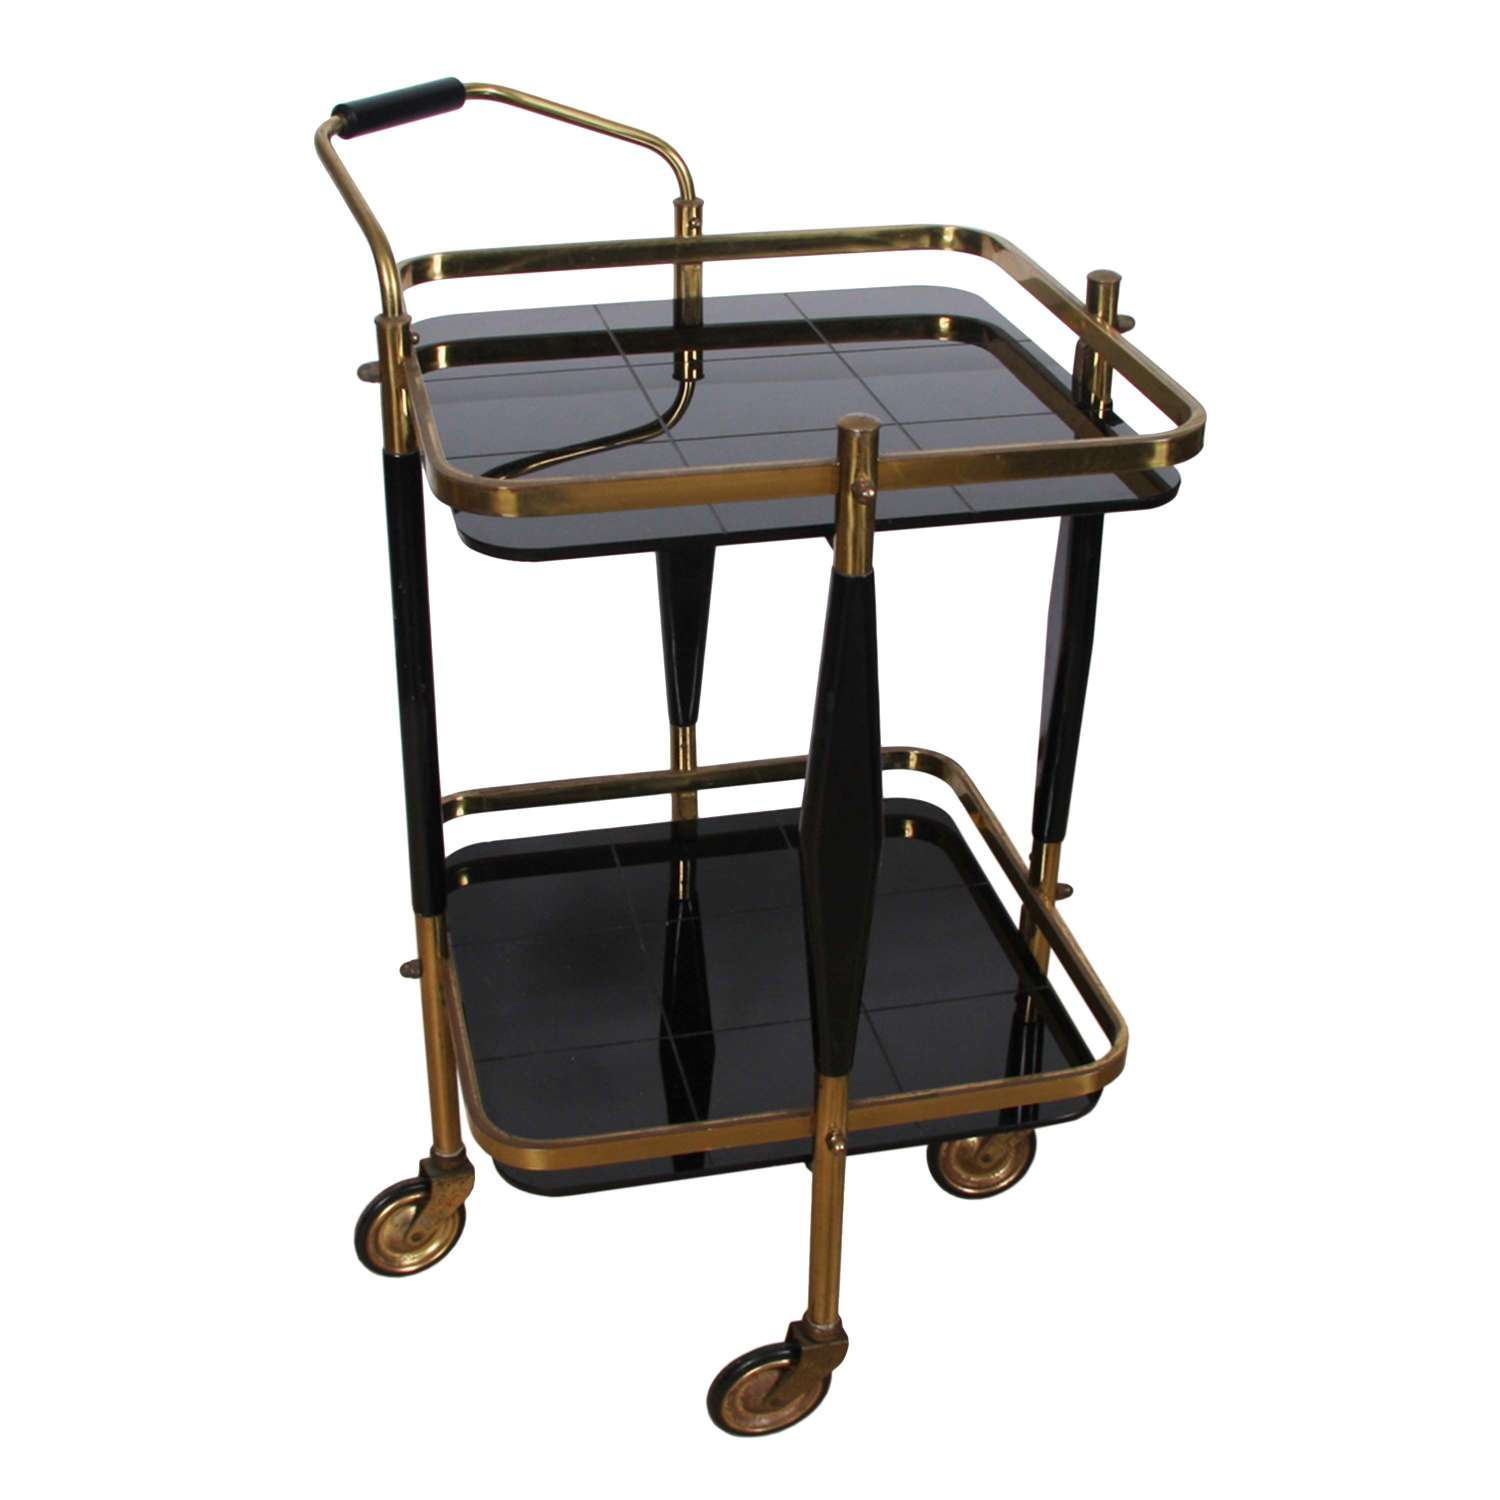 Italian Brass and Black Glass Small 1950s Bar Trolley